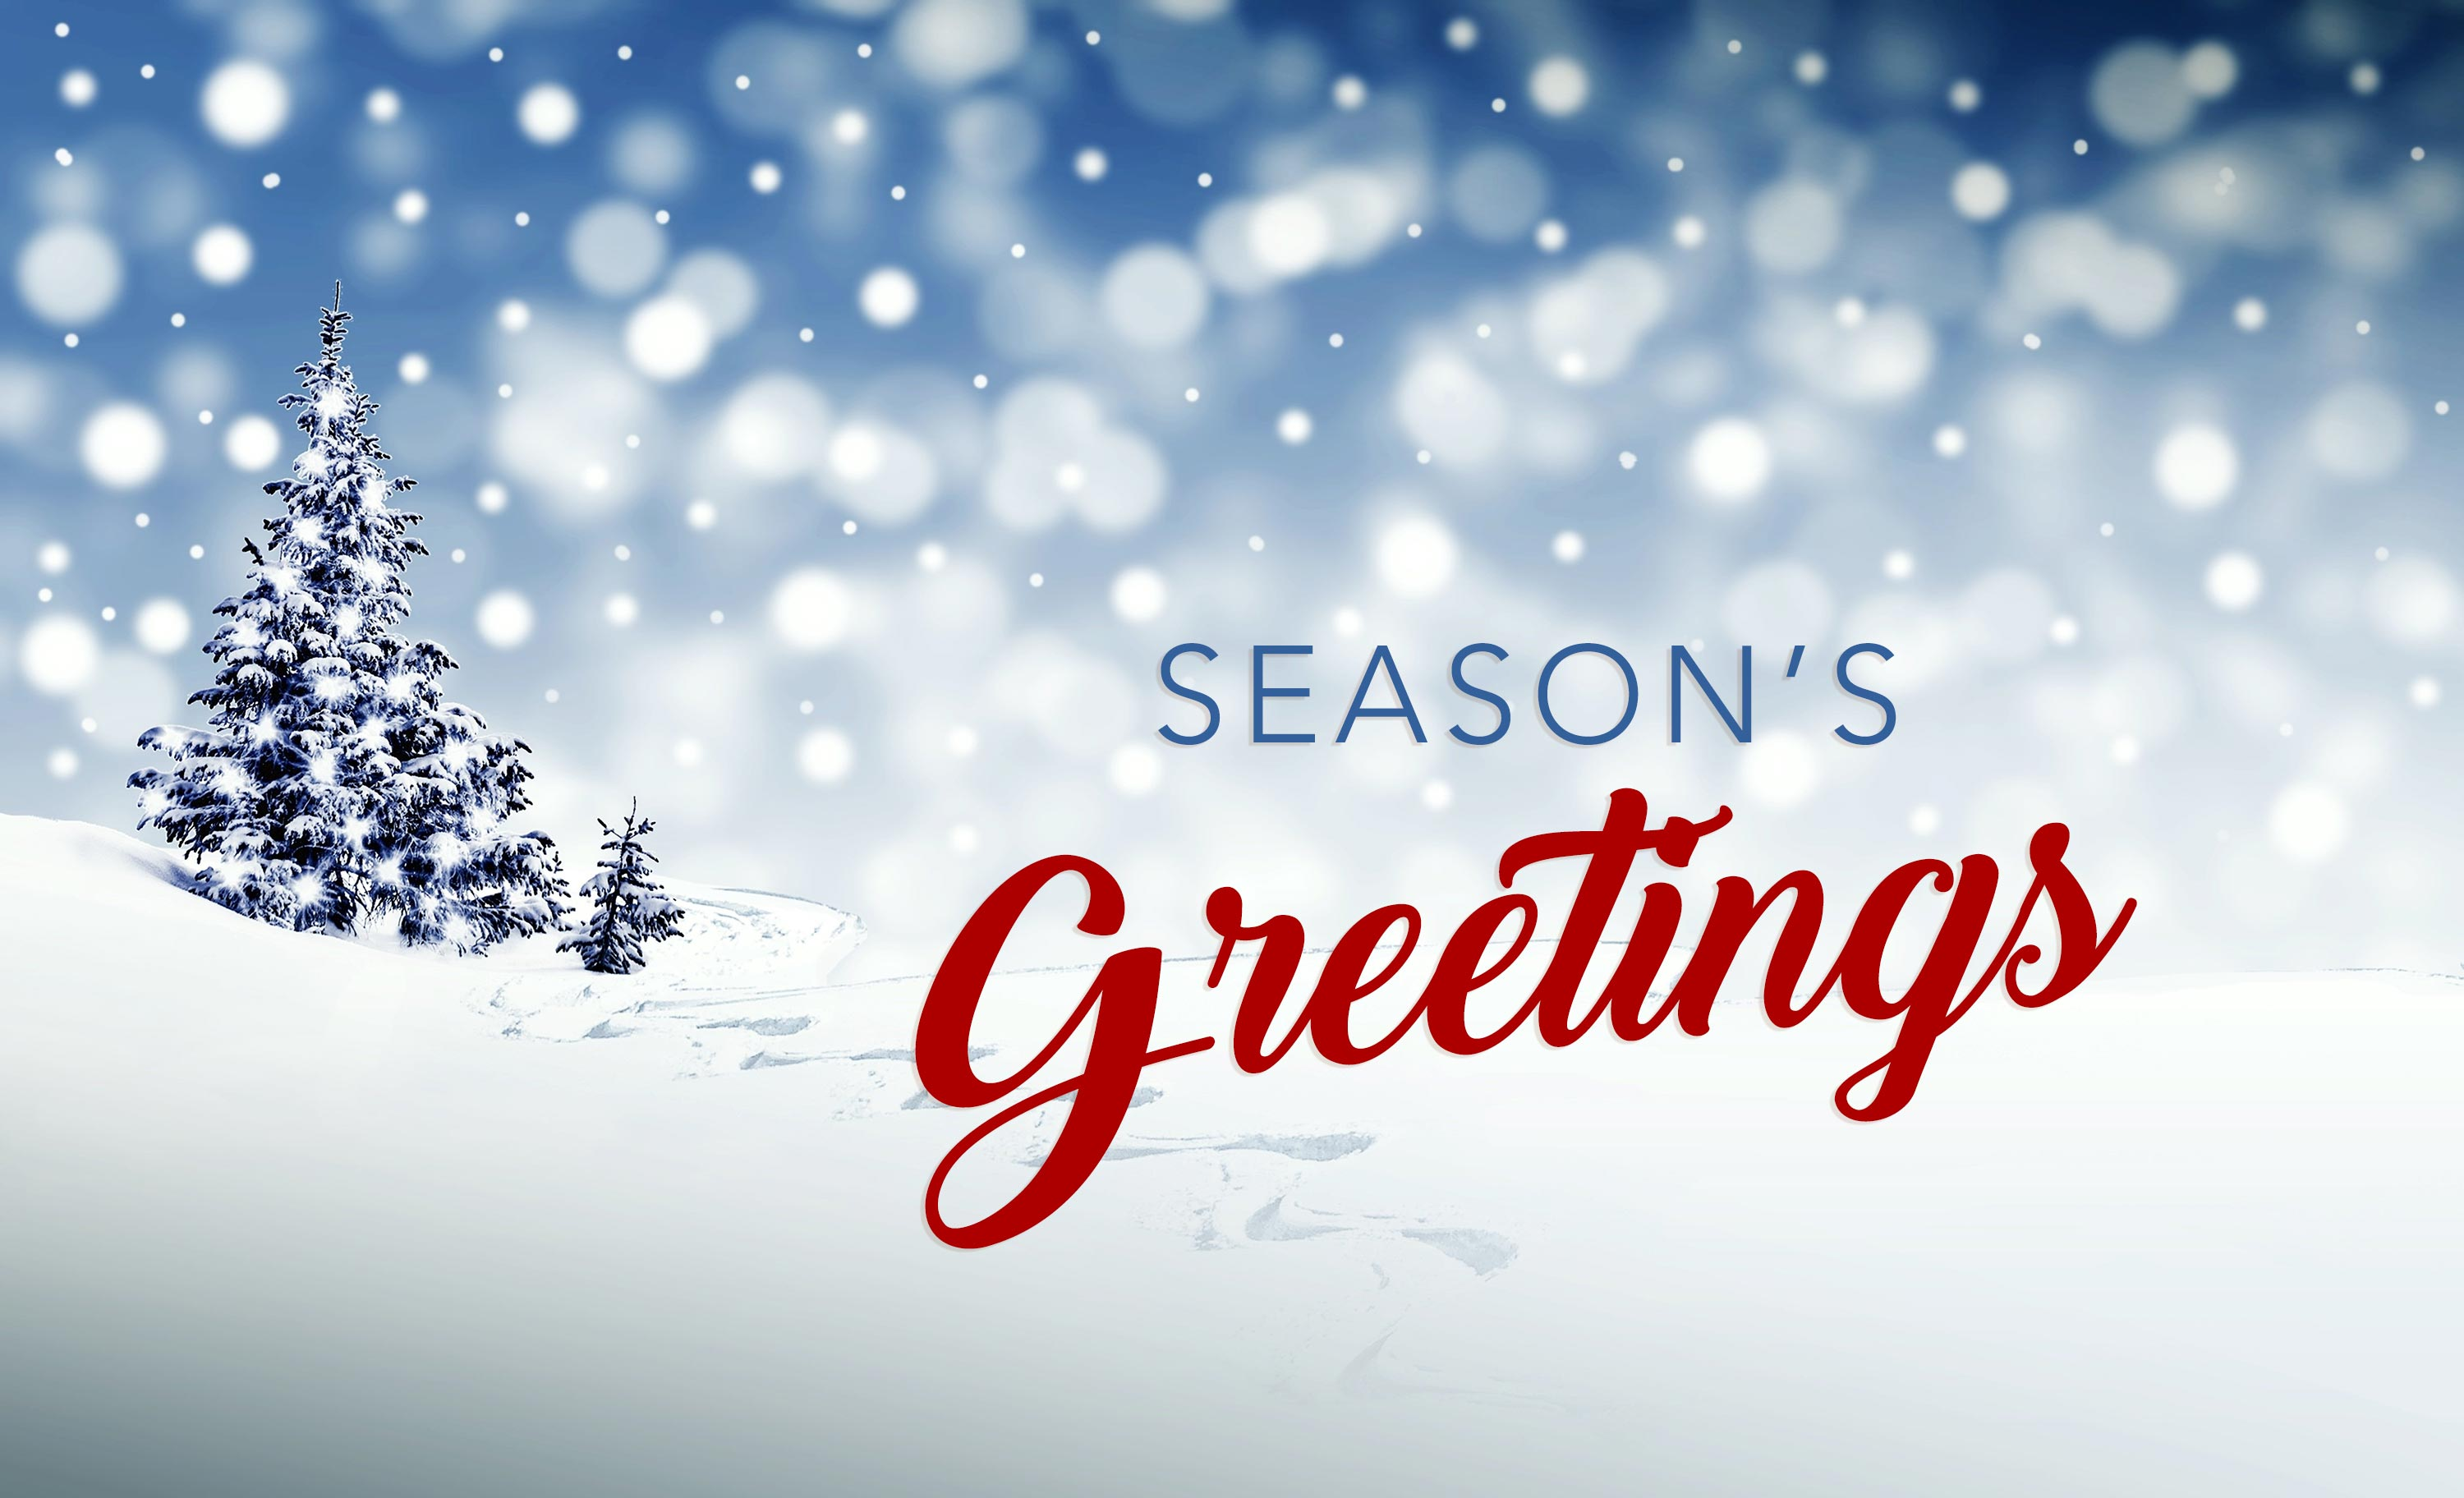 15 Seasons Greetings Cards Stock Images HD Wallpapers Winter 3000x1824